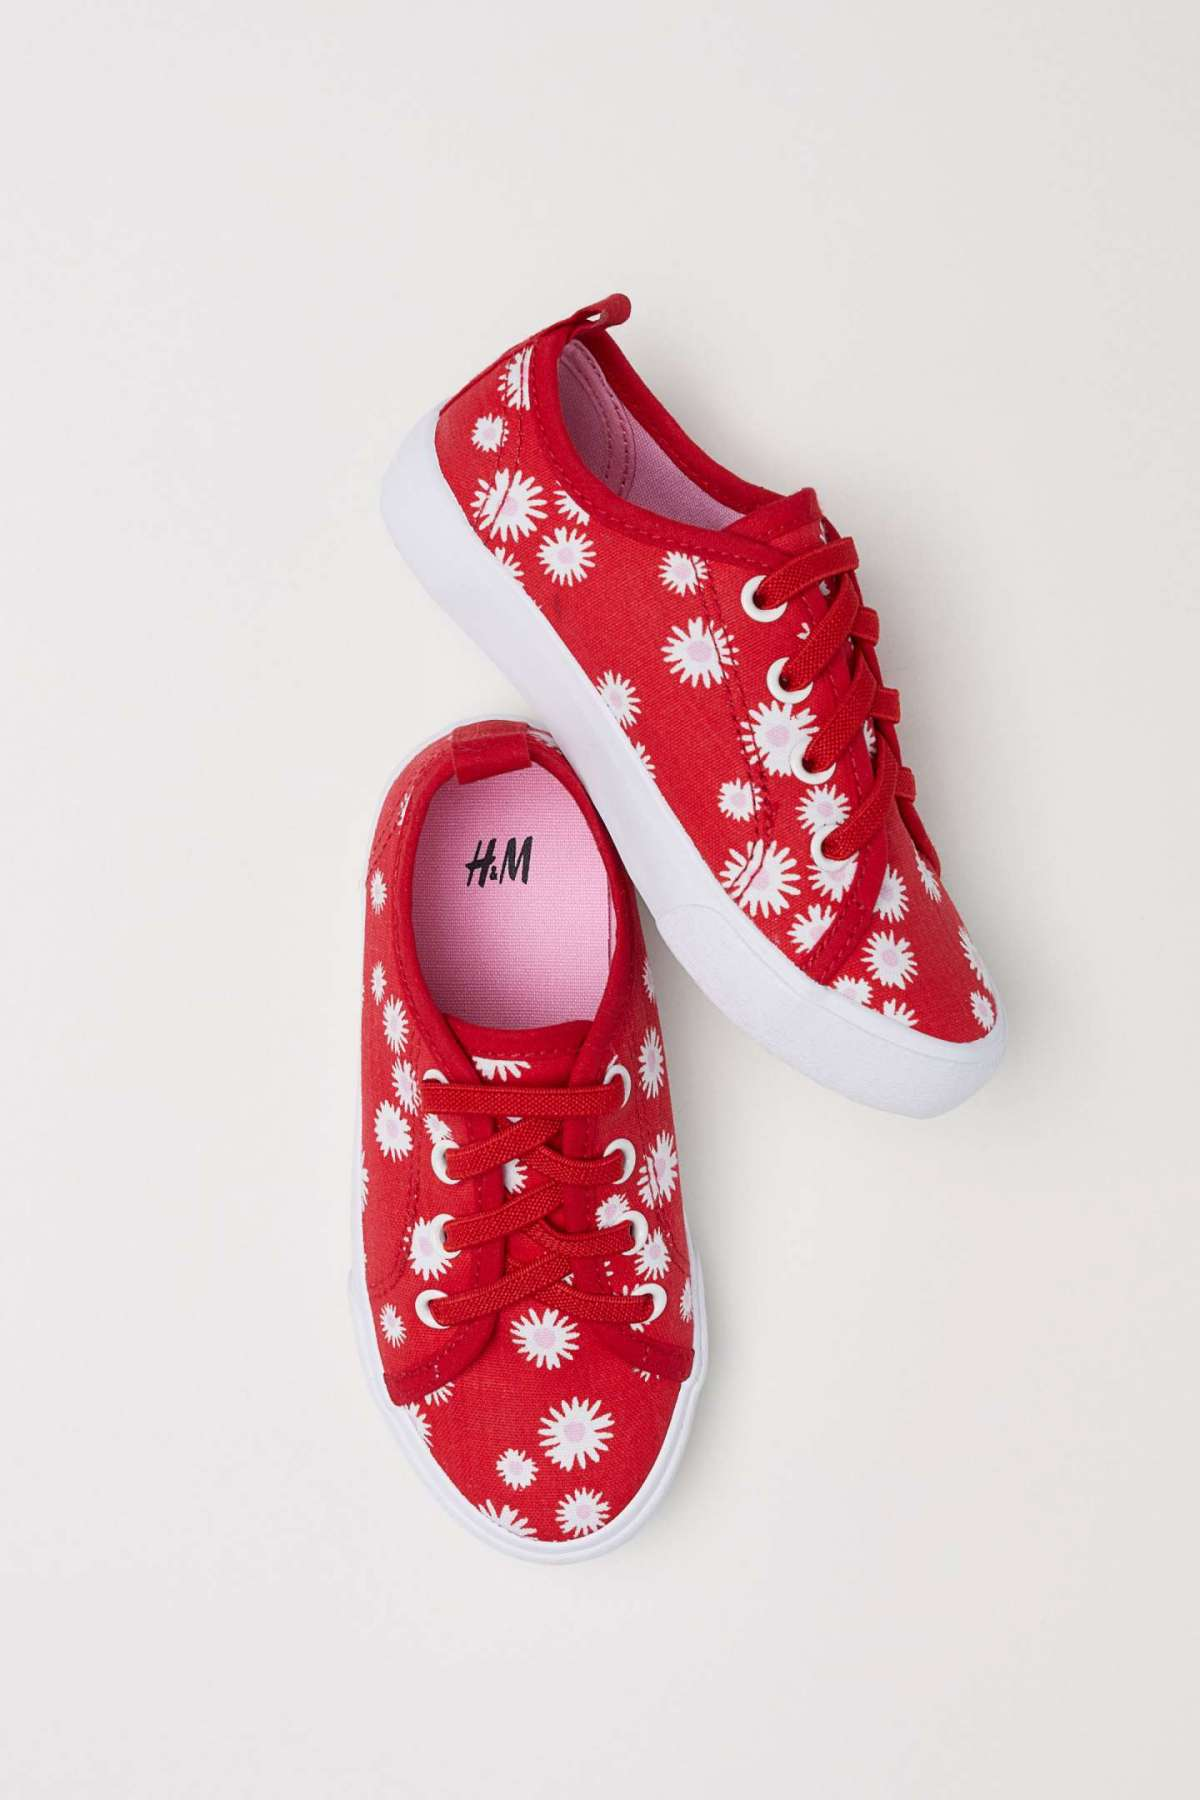 Sneakers bambina in tela H&M a 9,99 euro